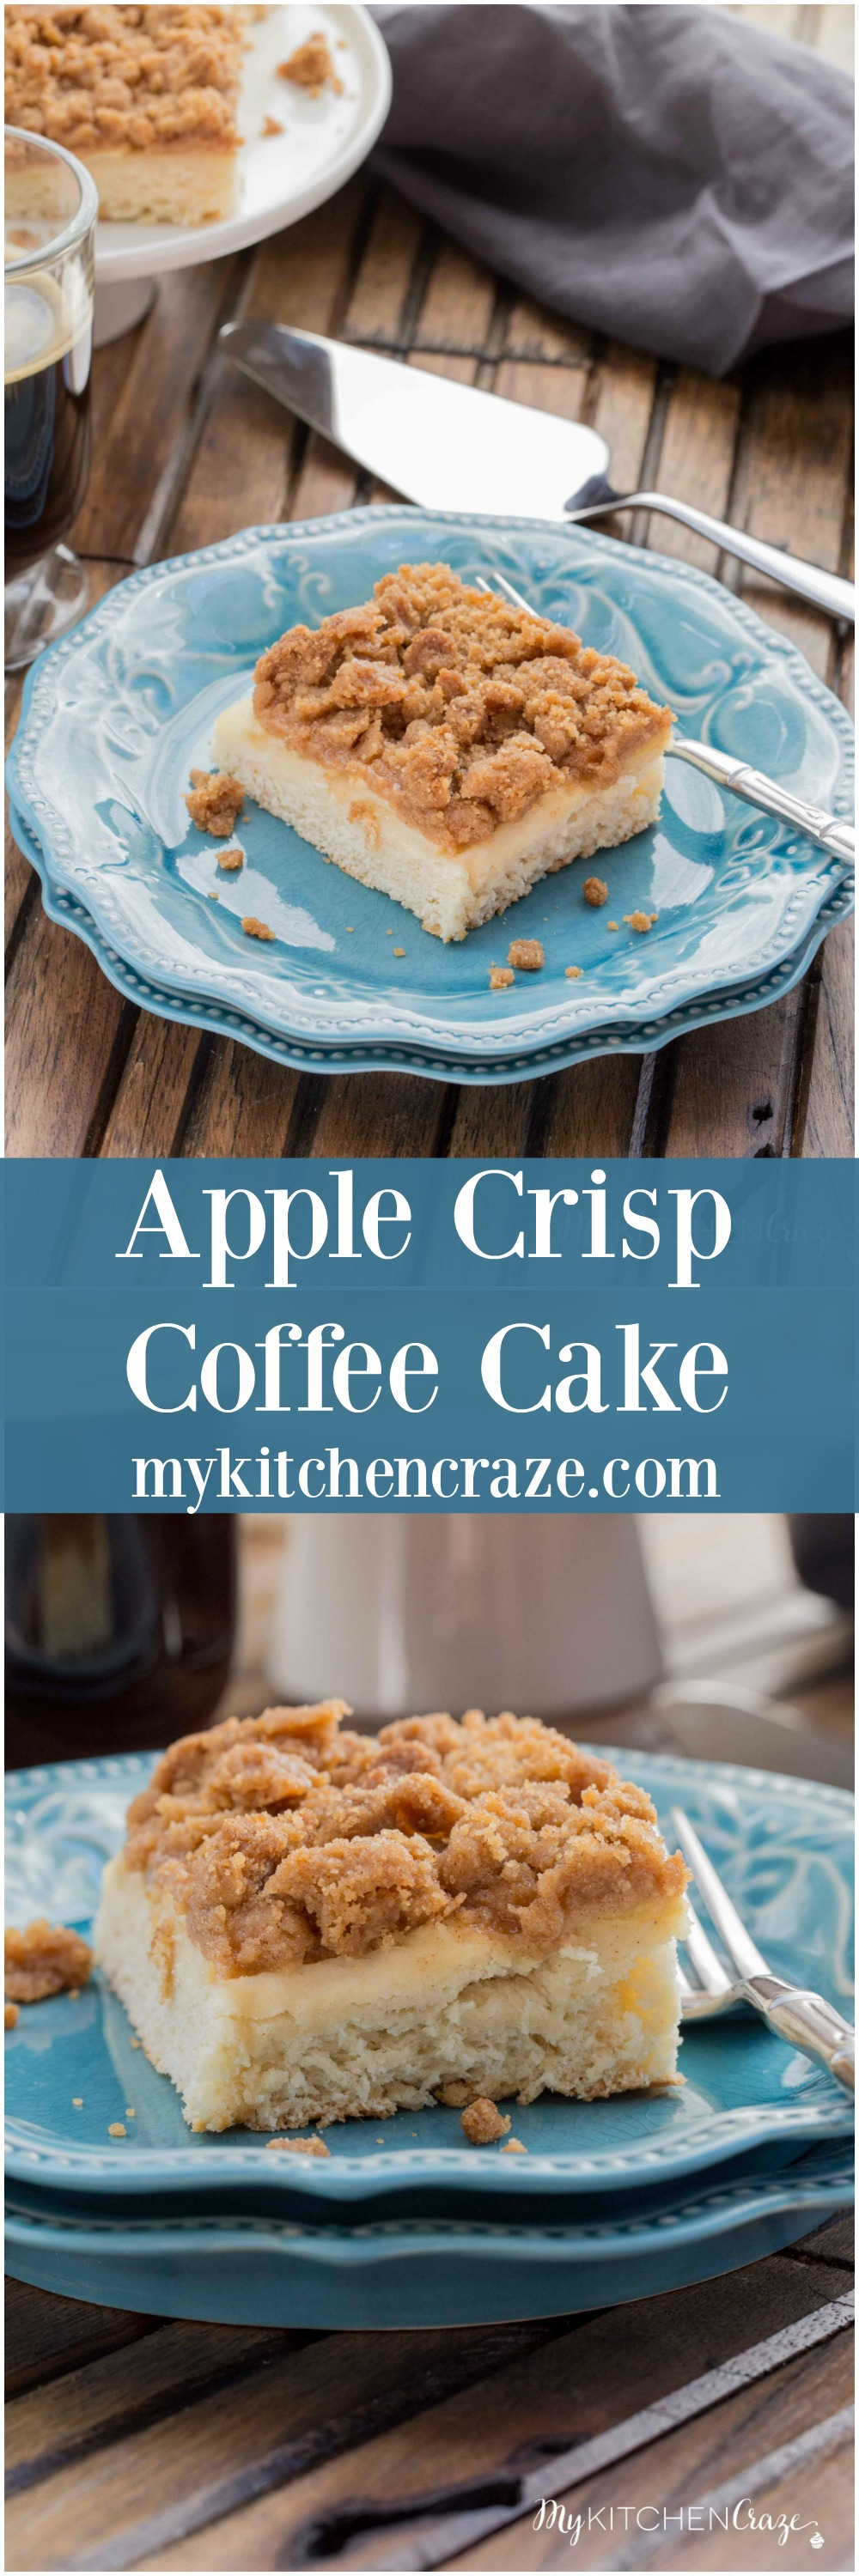 Apple Crisp Coffeecake ~ mykitchencraze.com ~ Moist cake loaded with apples then topped with a delicious crumb topping. This cake is perfect for a party or just because.